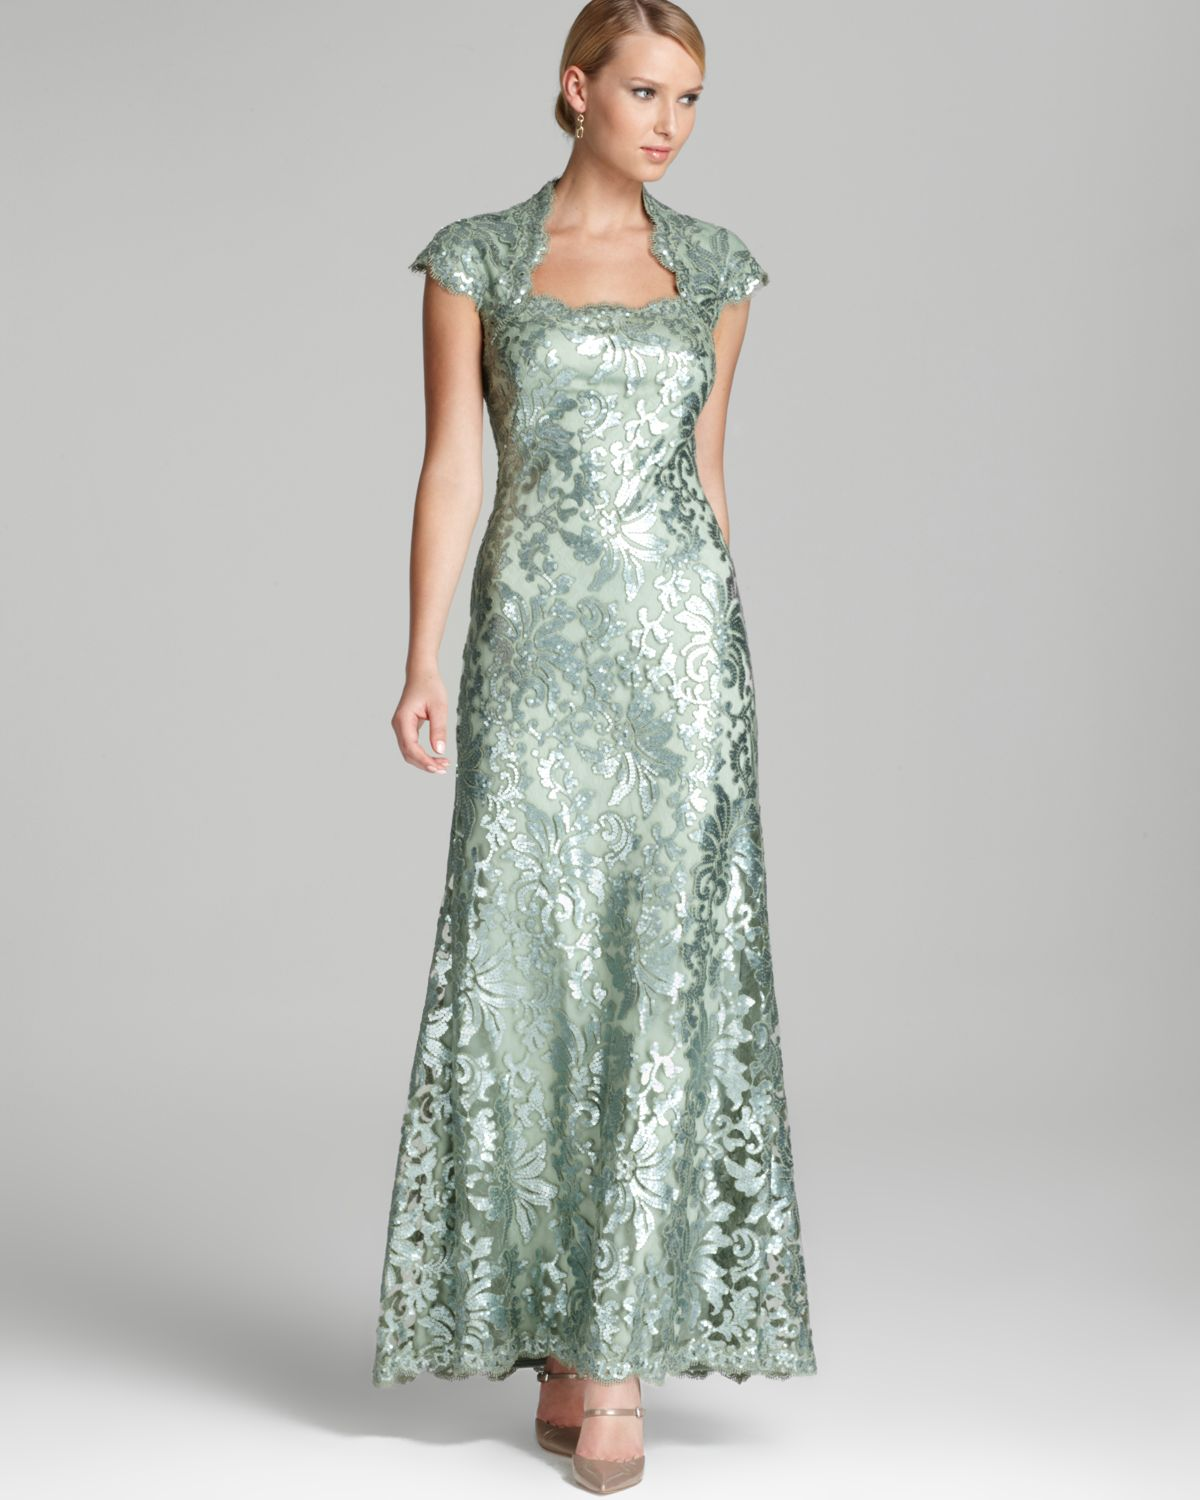 Lyst - Tadashi Shoji Lace Gown Cap Sleeve Square Neck Sequin in Green